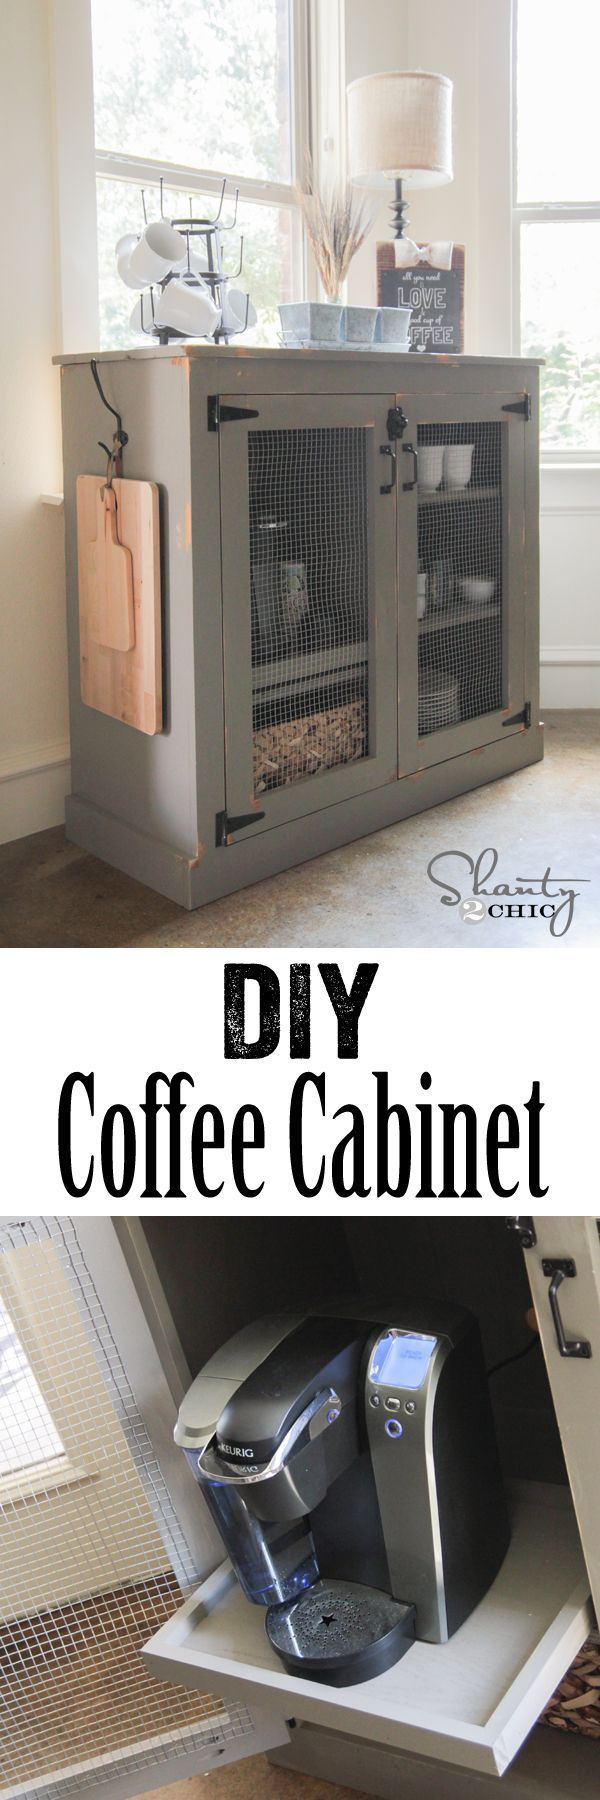 LOVE this DIY Coffee Cabinet!! Free Plans and Full Tutorial! http://www.shanty-2-chic.com